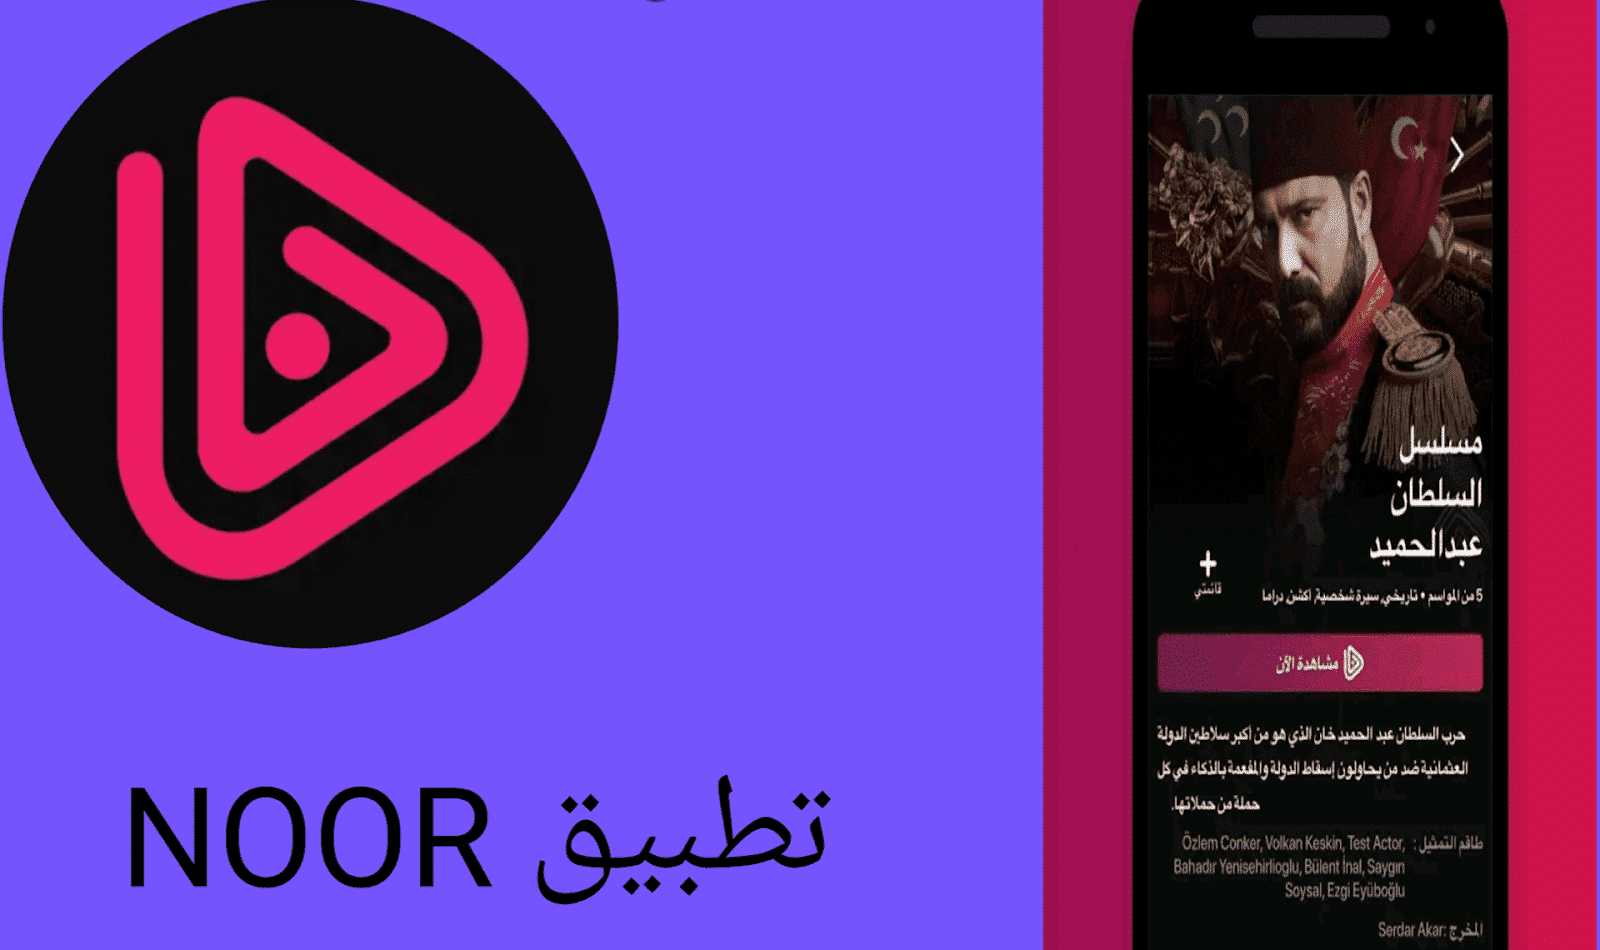 Download the official Al Noor app | To watch the best Turkish series before its release